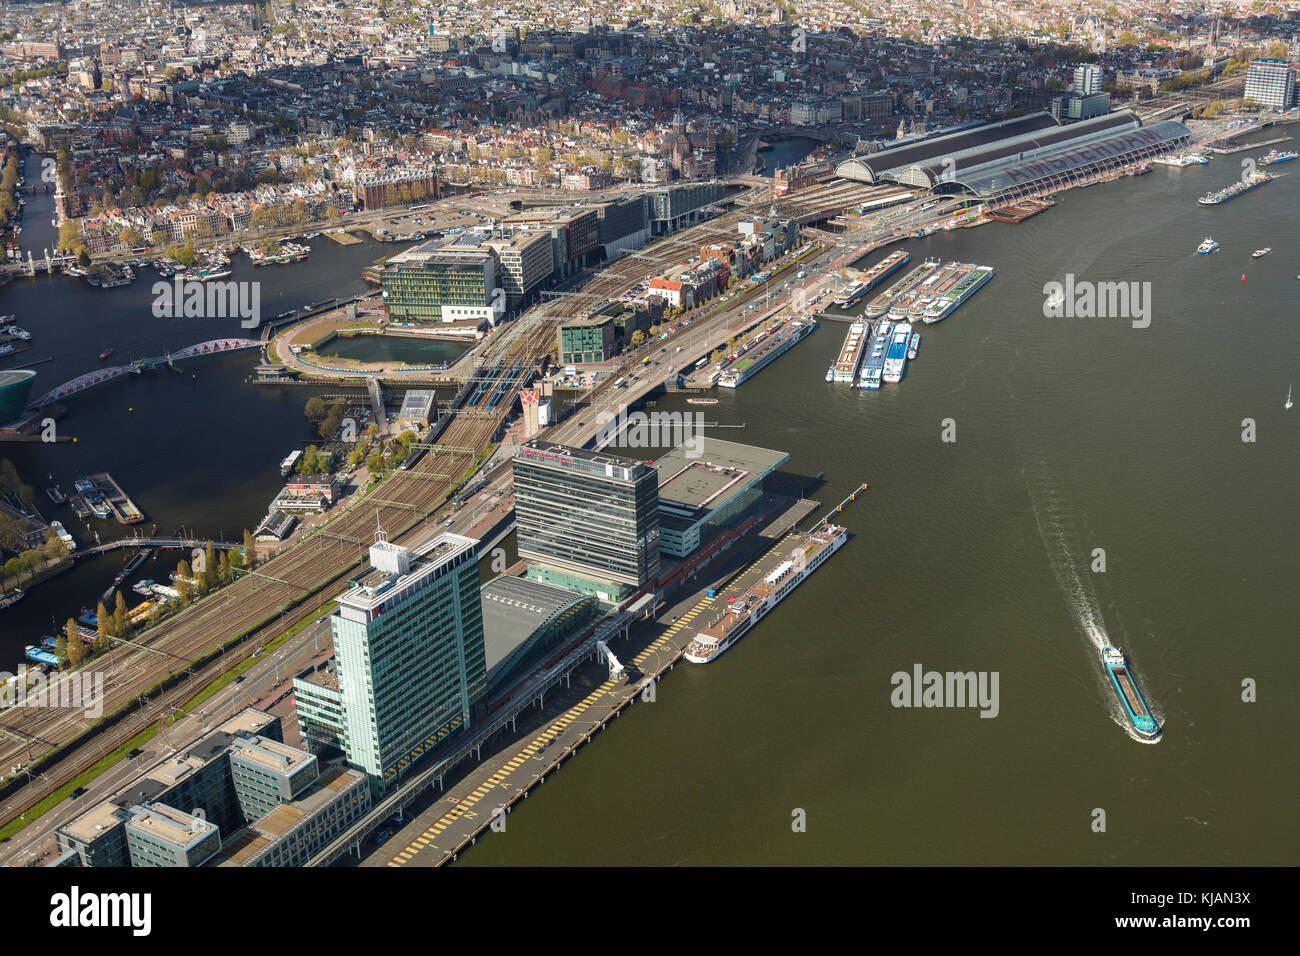 Aerial view of Amsterdam and Central Railway Station, The Netherlands - Stock Image